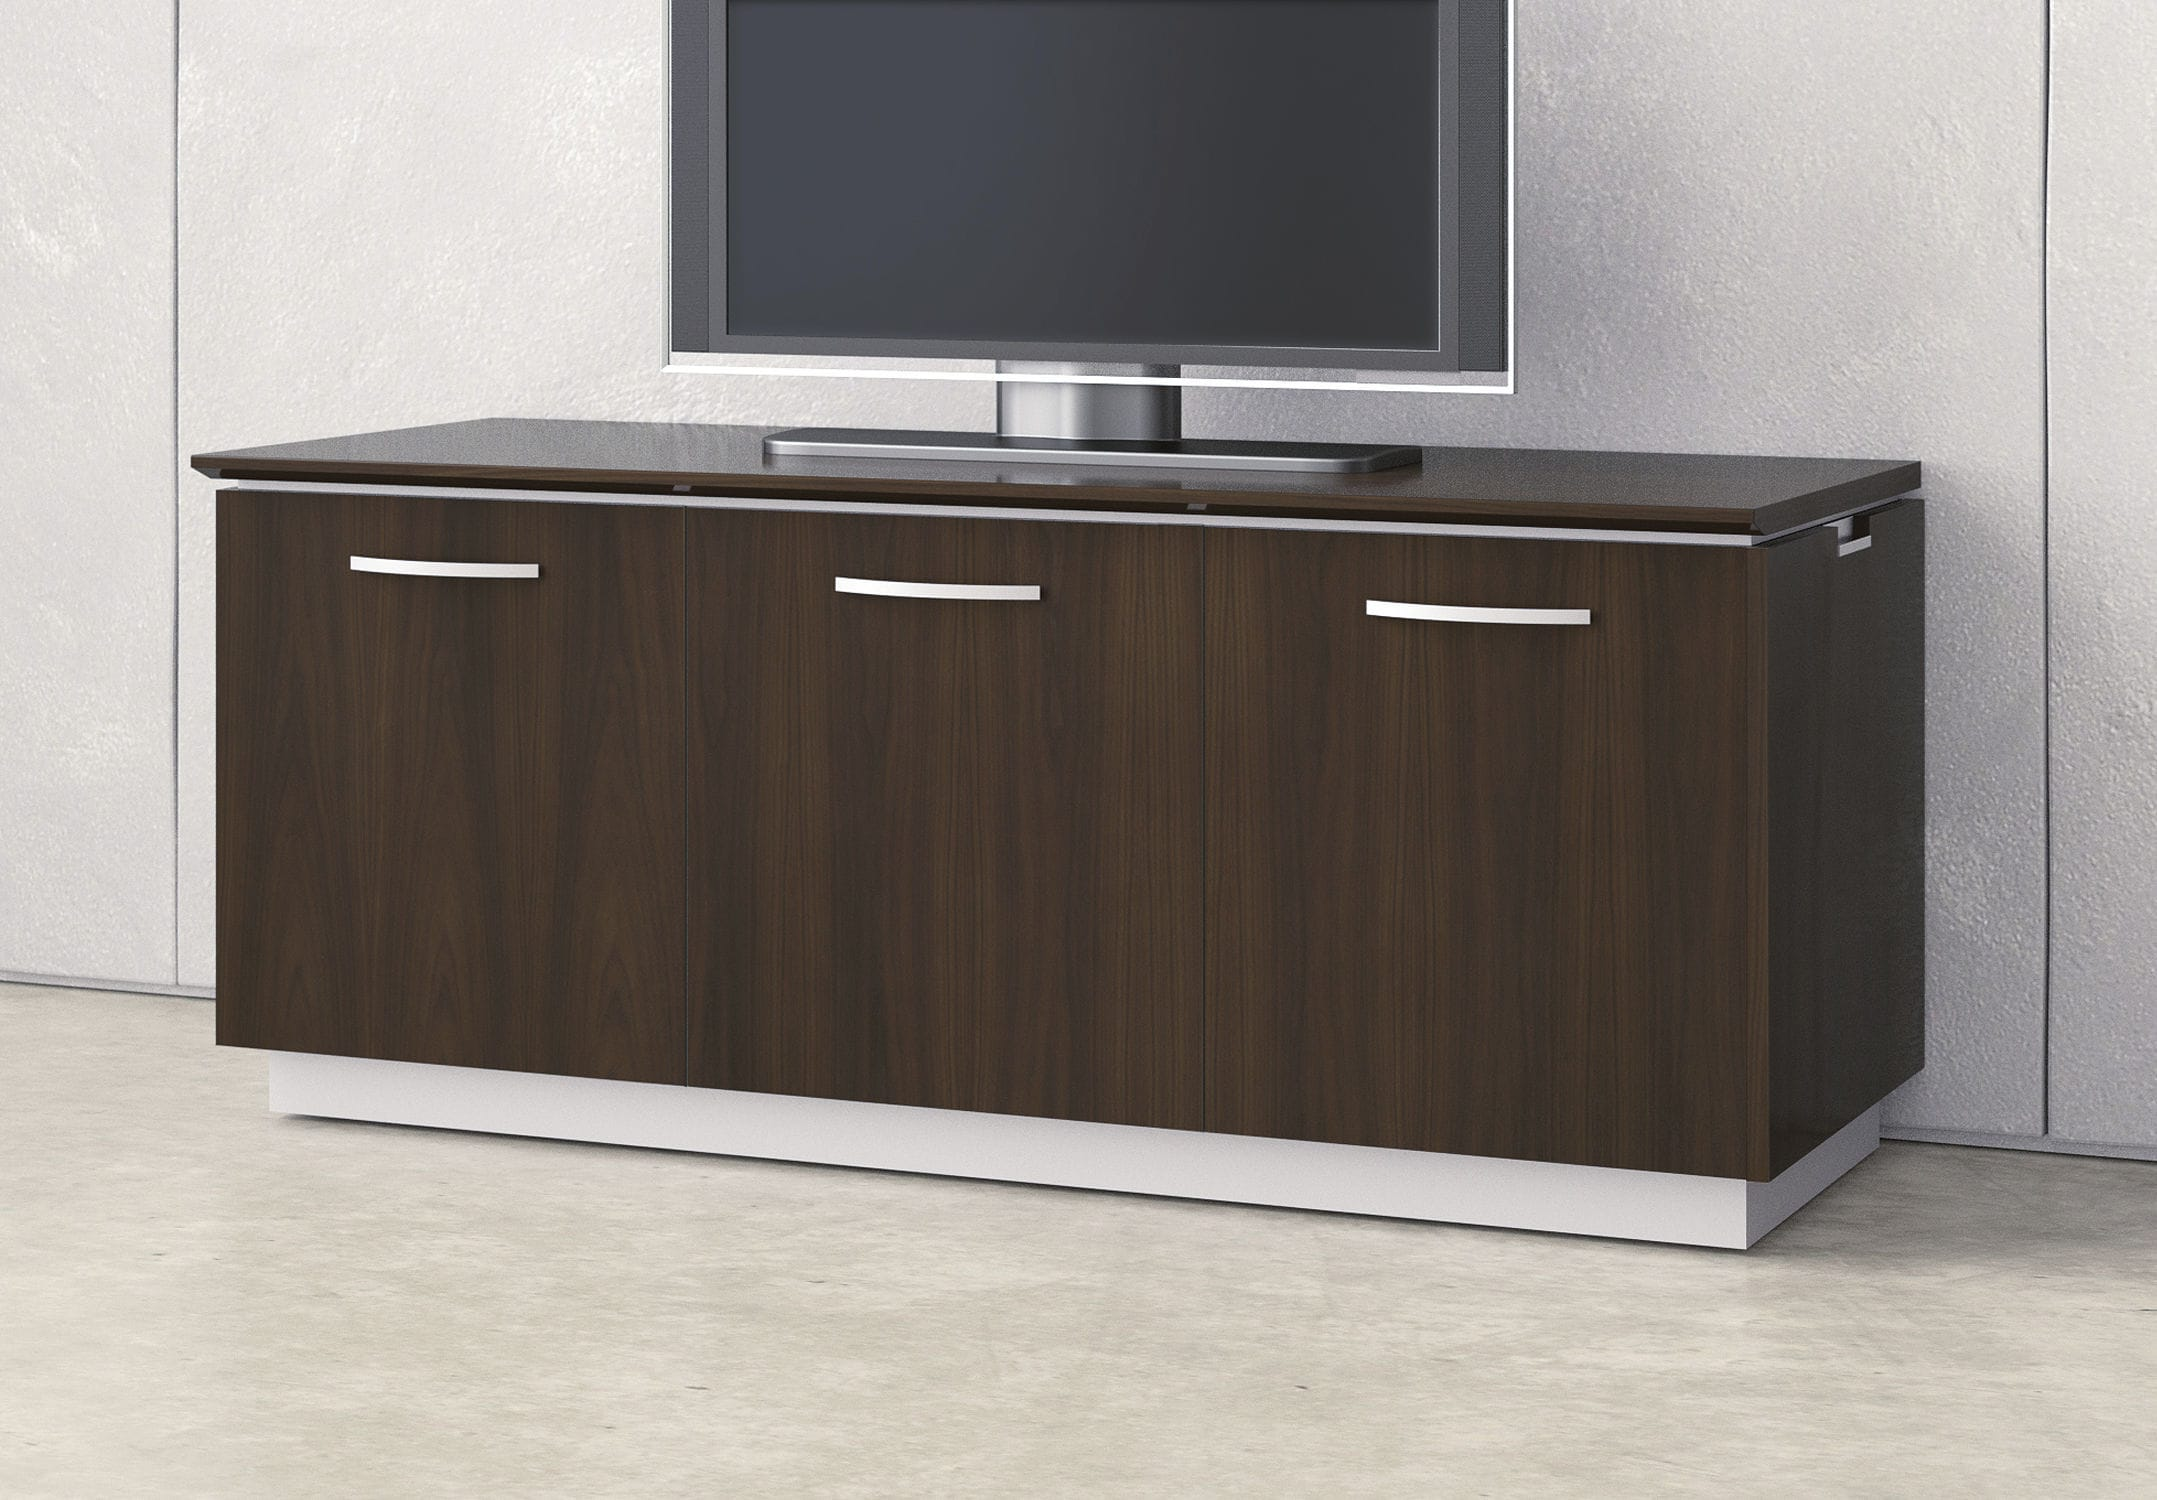 mueble multimedia moderno modulable para sala de de madera lacada performance nucraft